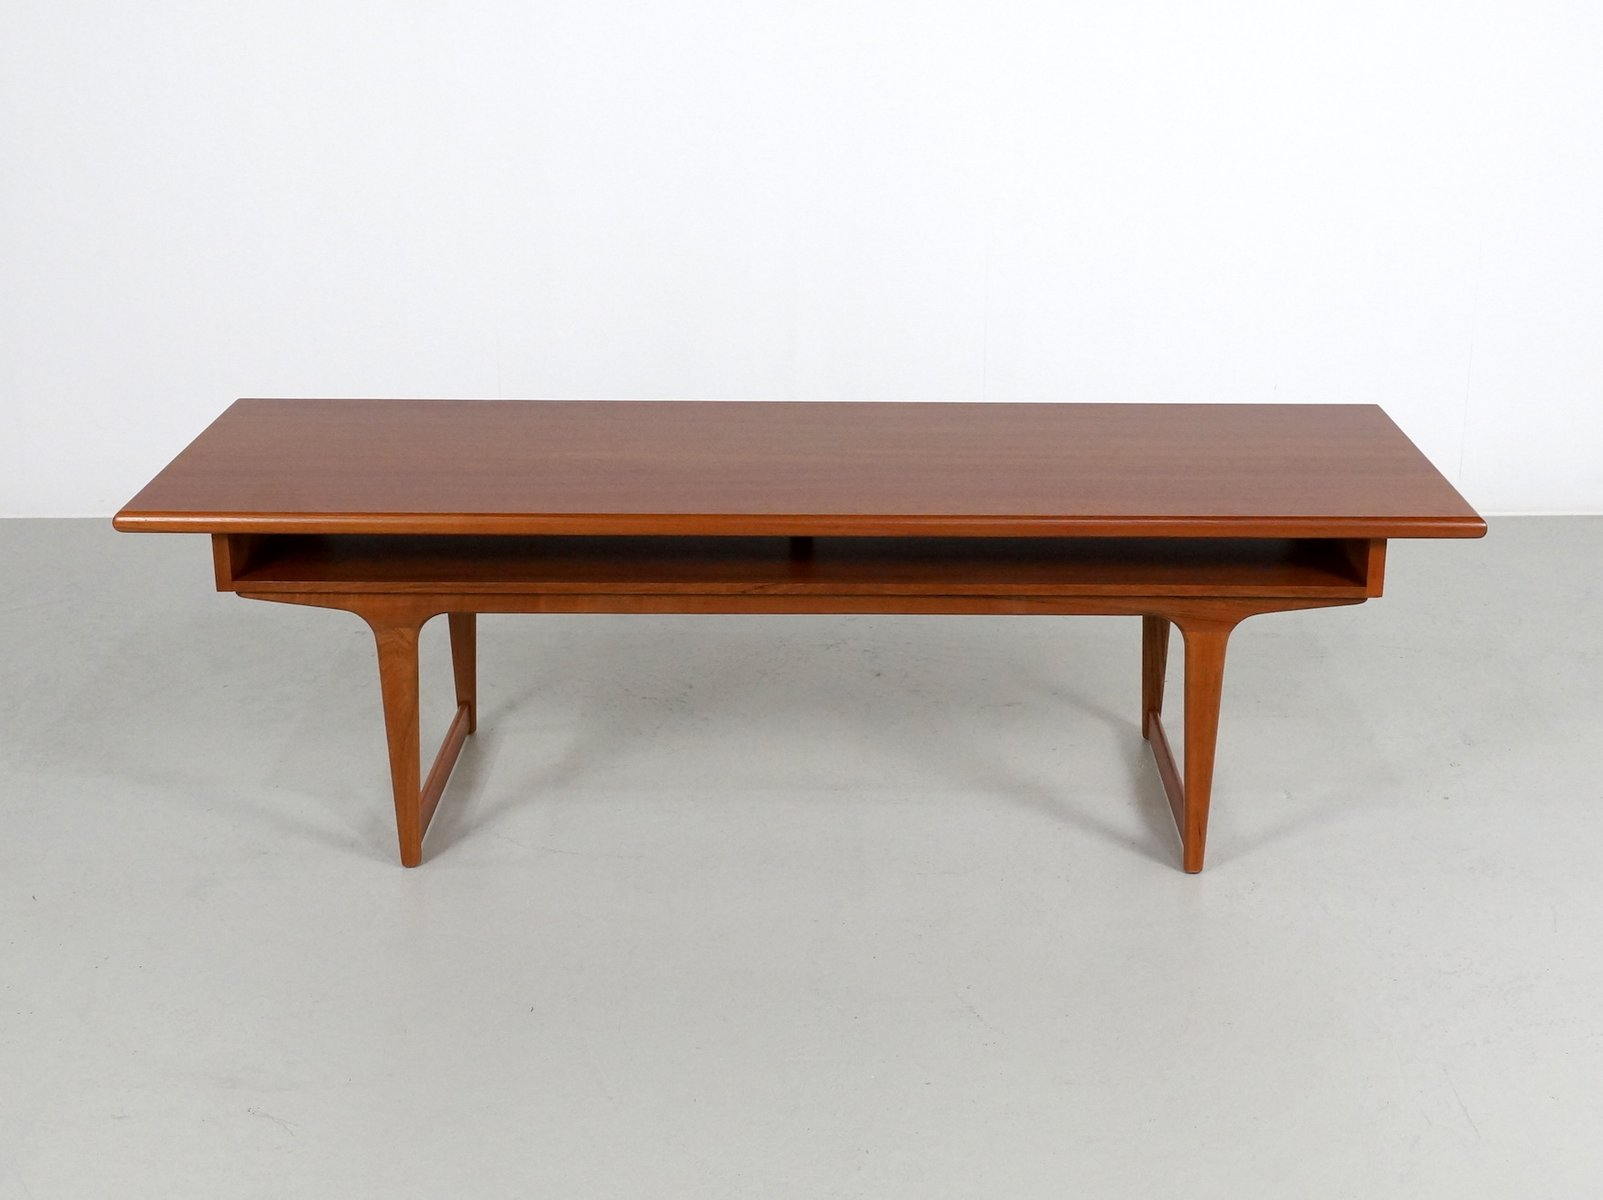 Teak Danish Coffee Table 1960s for sale at Pamono